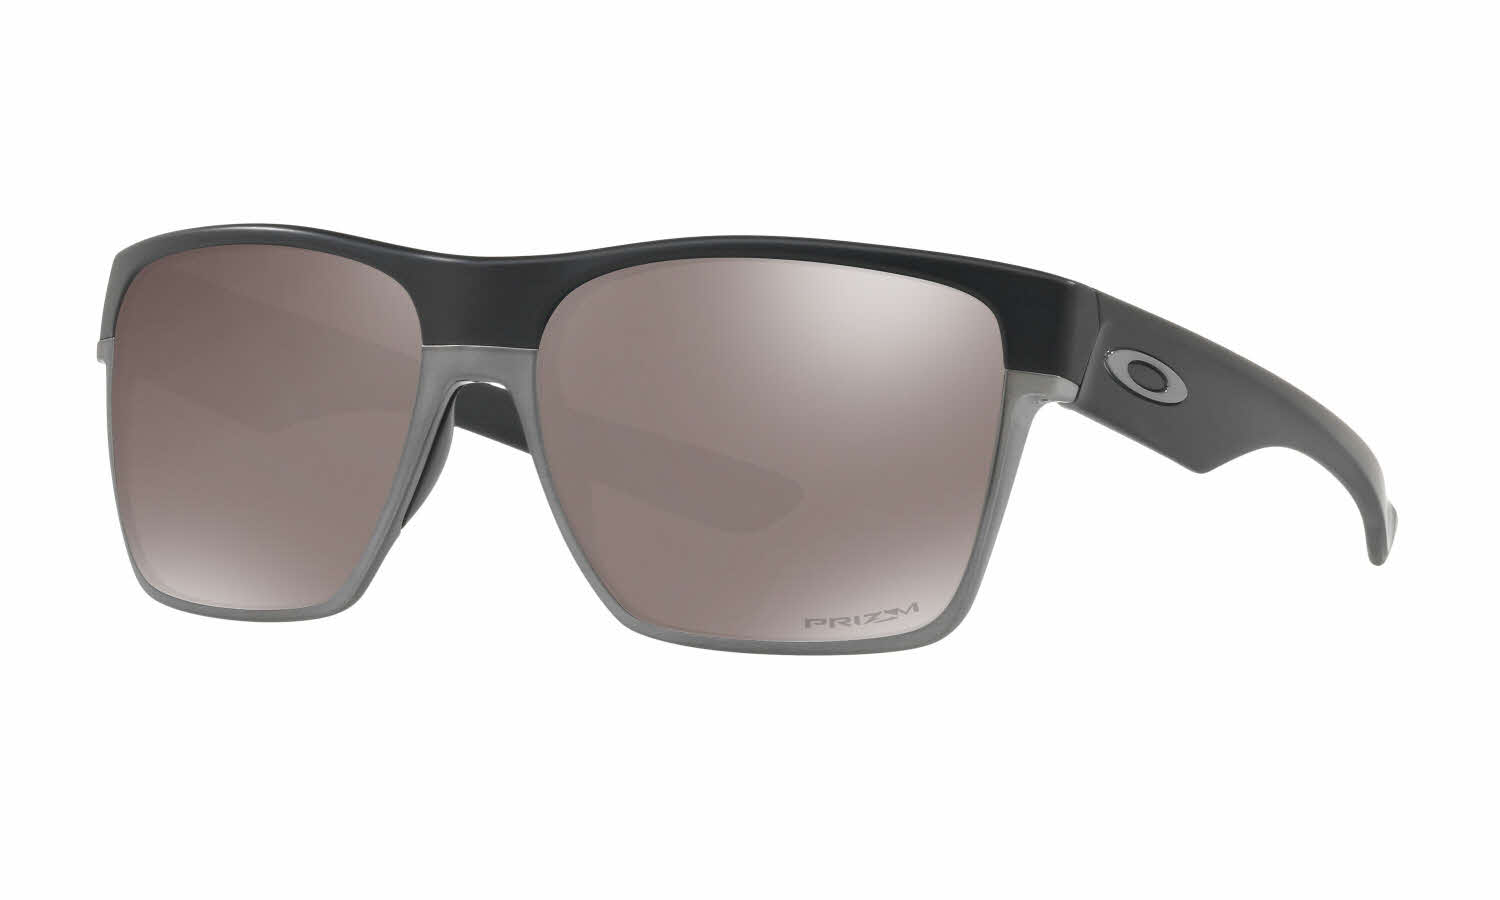 33833afd78 Oakley Twoface XL Sunglasses